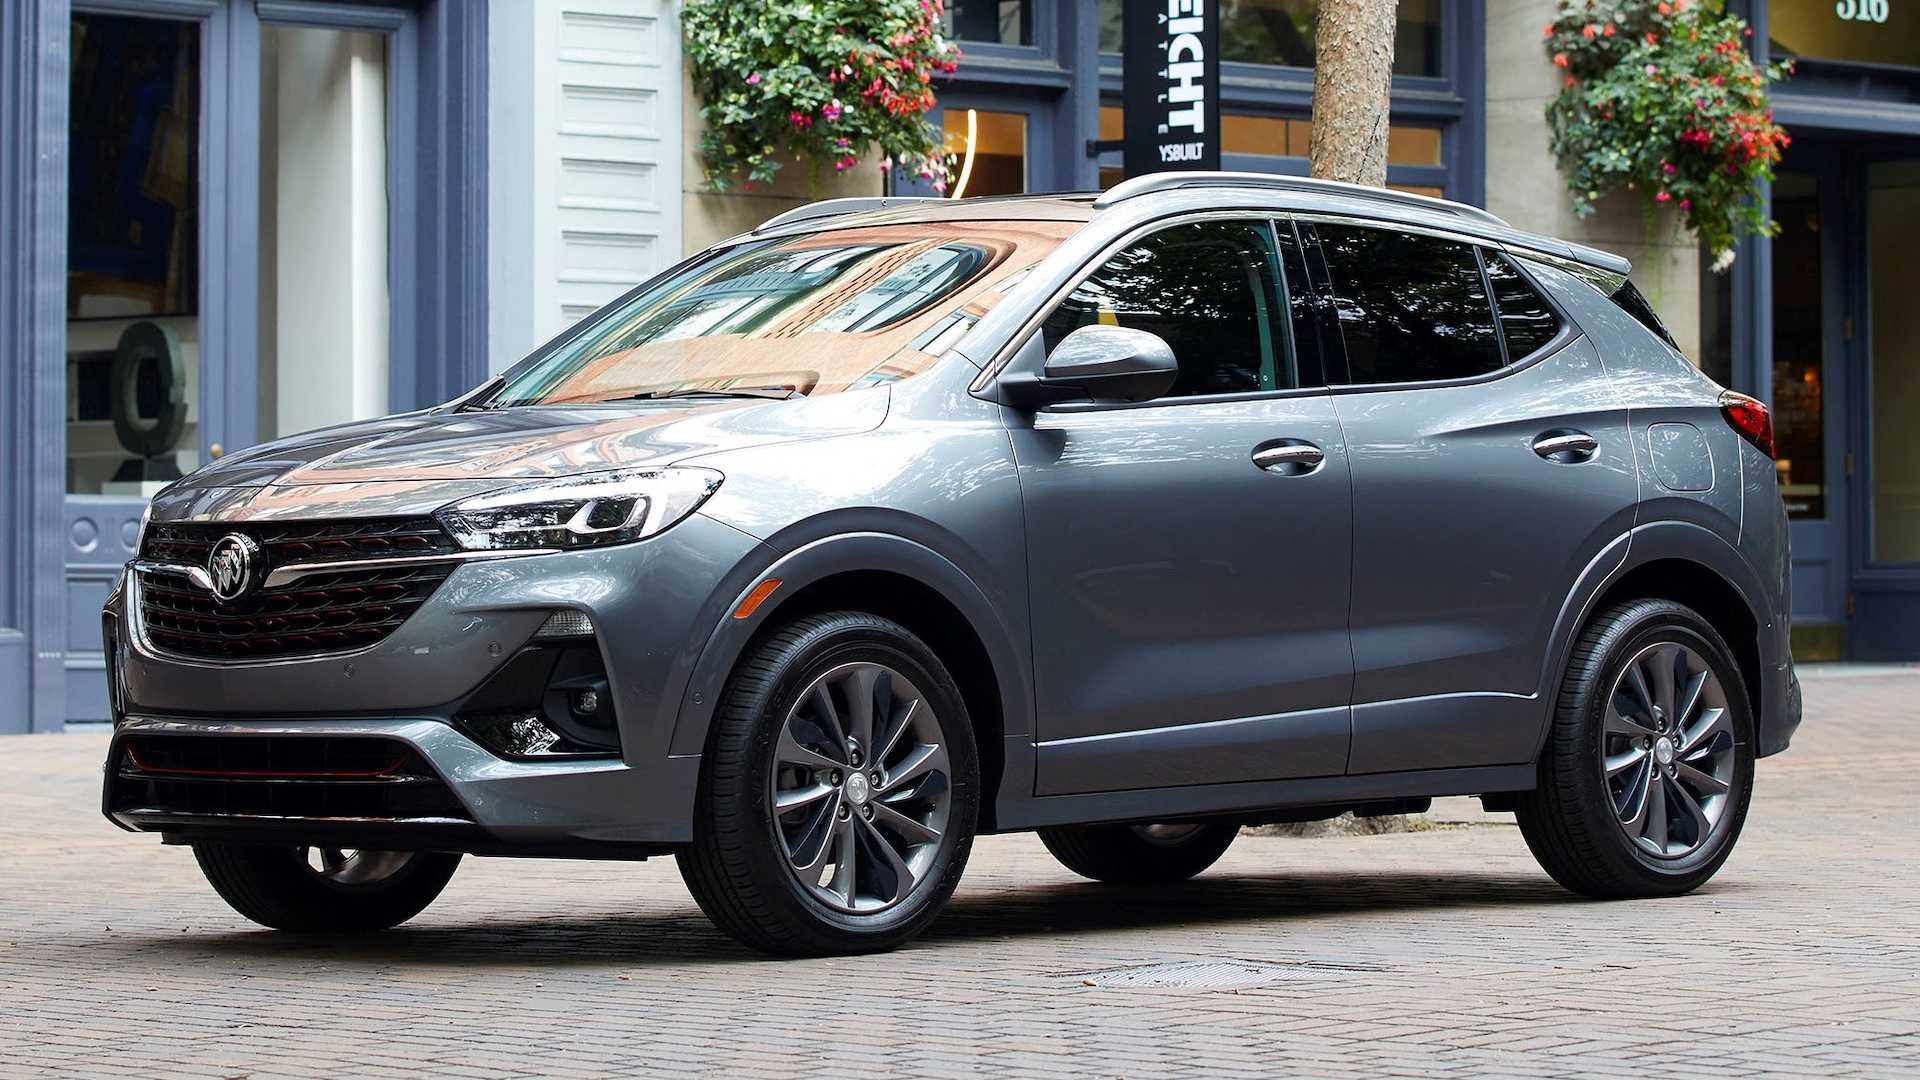 2021 Buick Encore Gx Details Emerge: Styling Tweaks, More Tech New 2022 Buick Encore Gx Owners Manual, News, Reviews